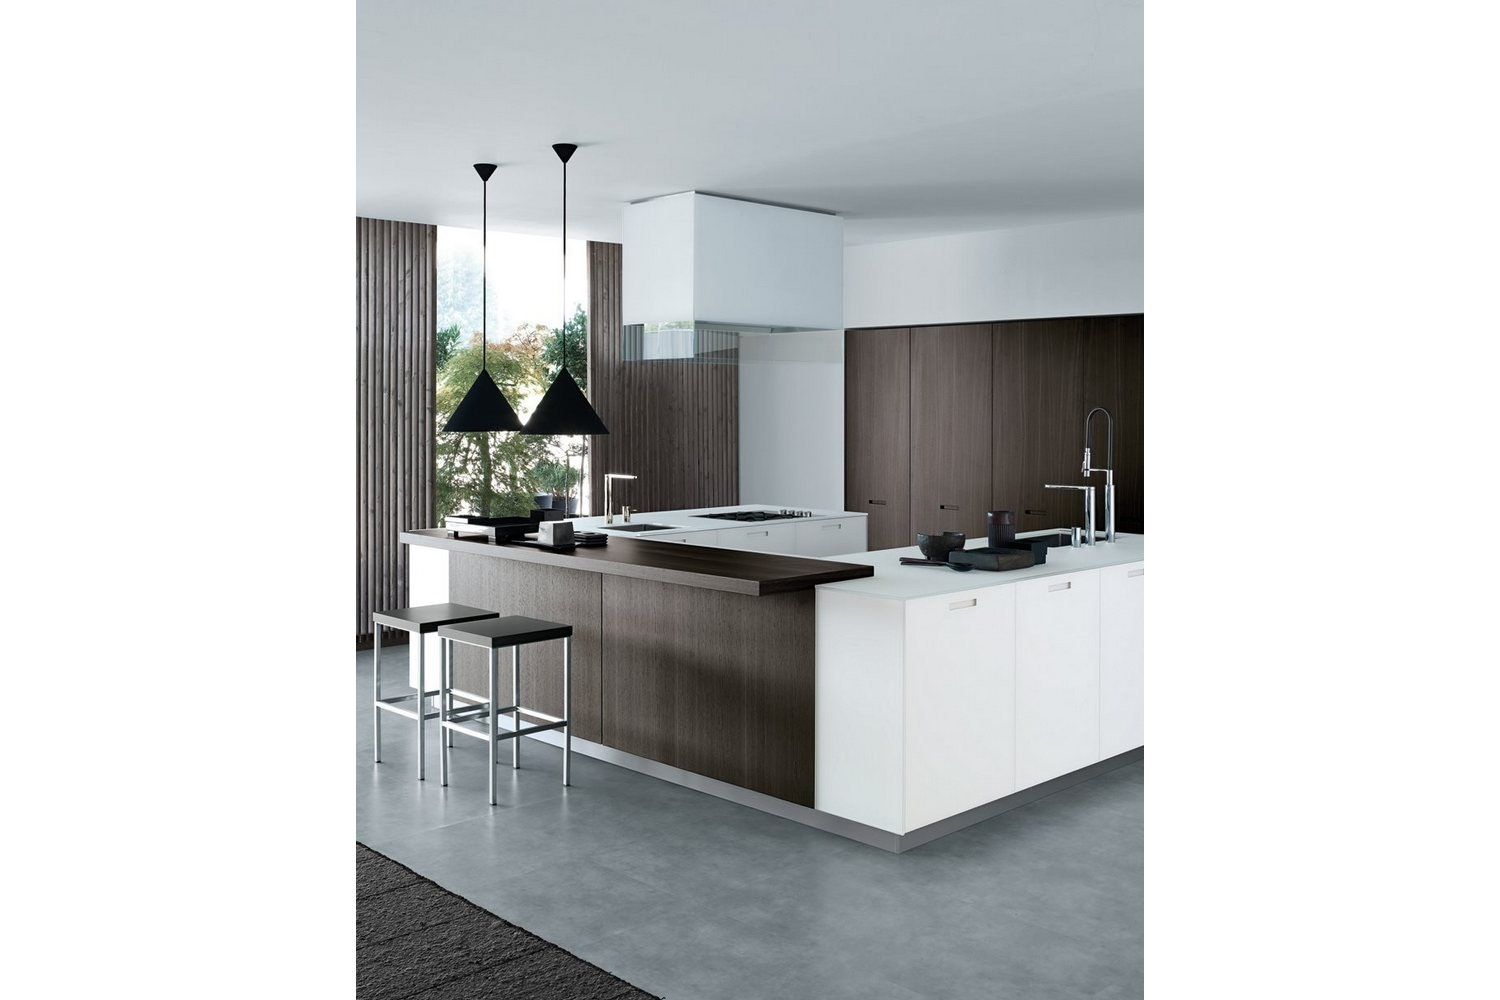 Kyton Kitchen by R&D Varenna for Poliform